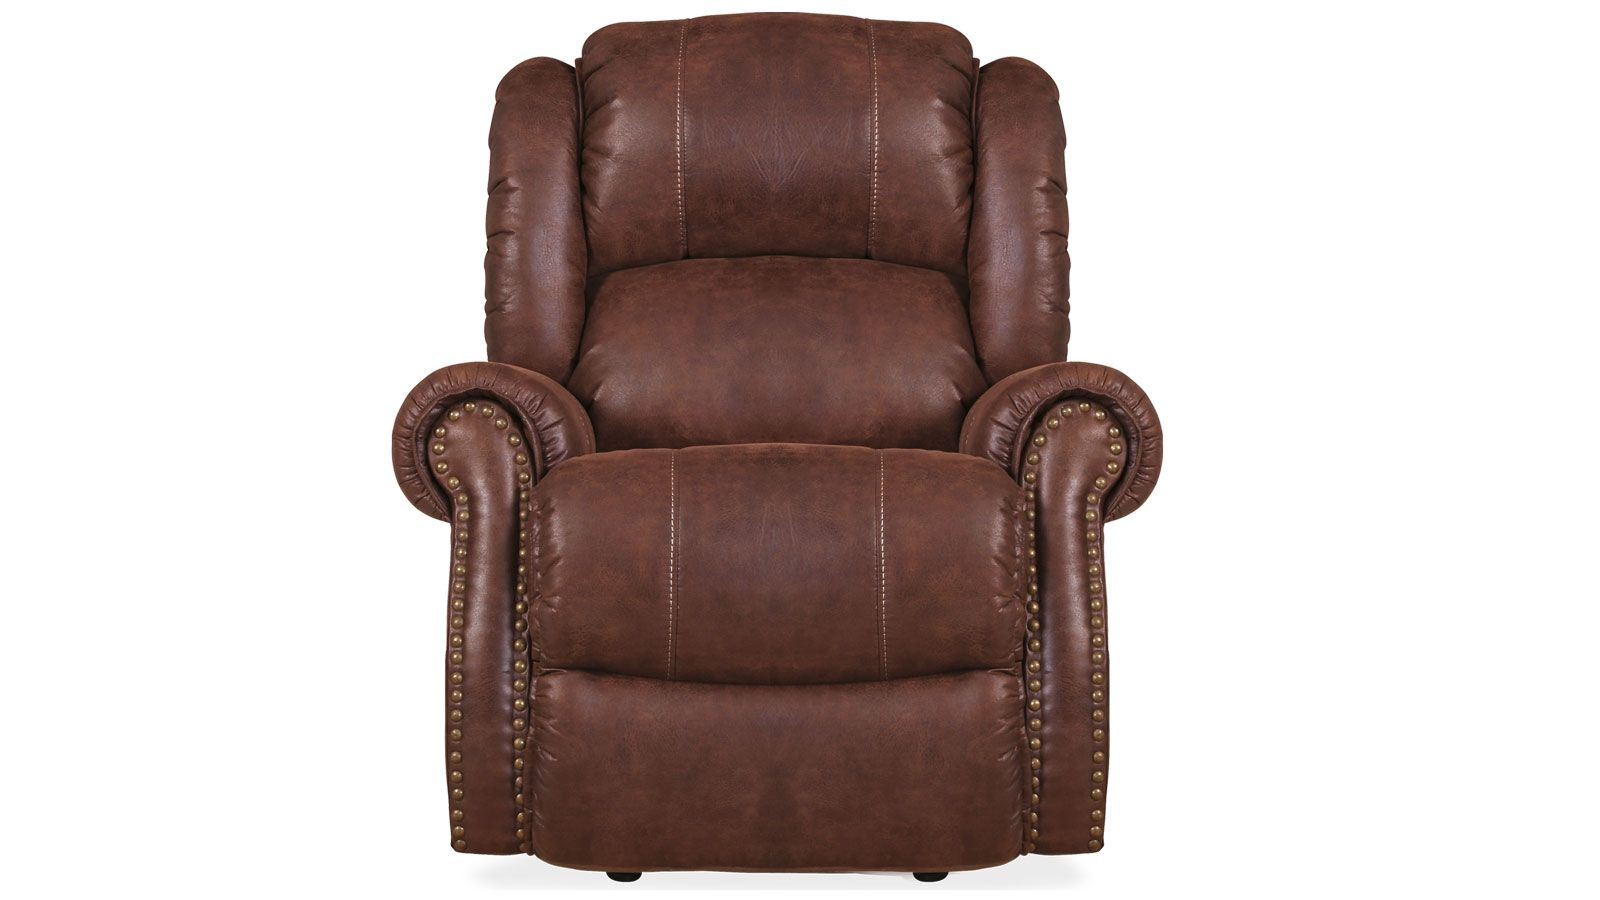 Big Sky Espresso Power Recliner, , large